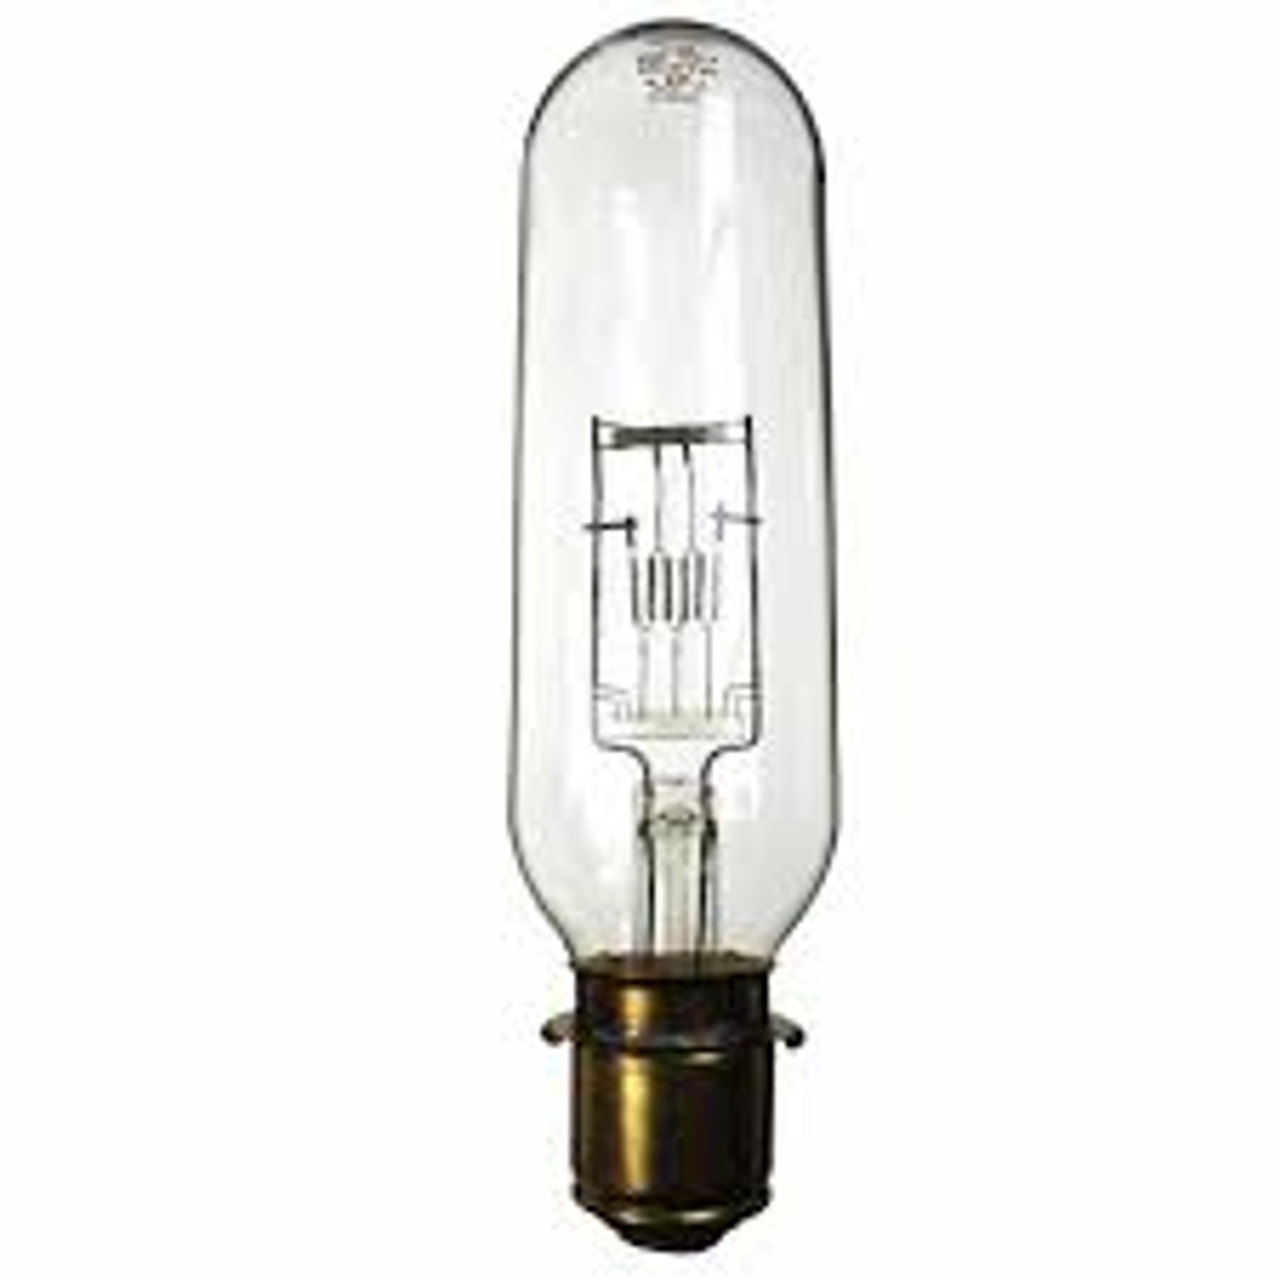 DTJ projector light replacement bulbs